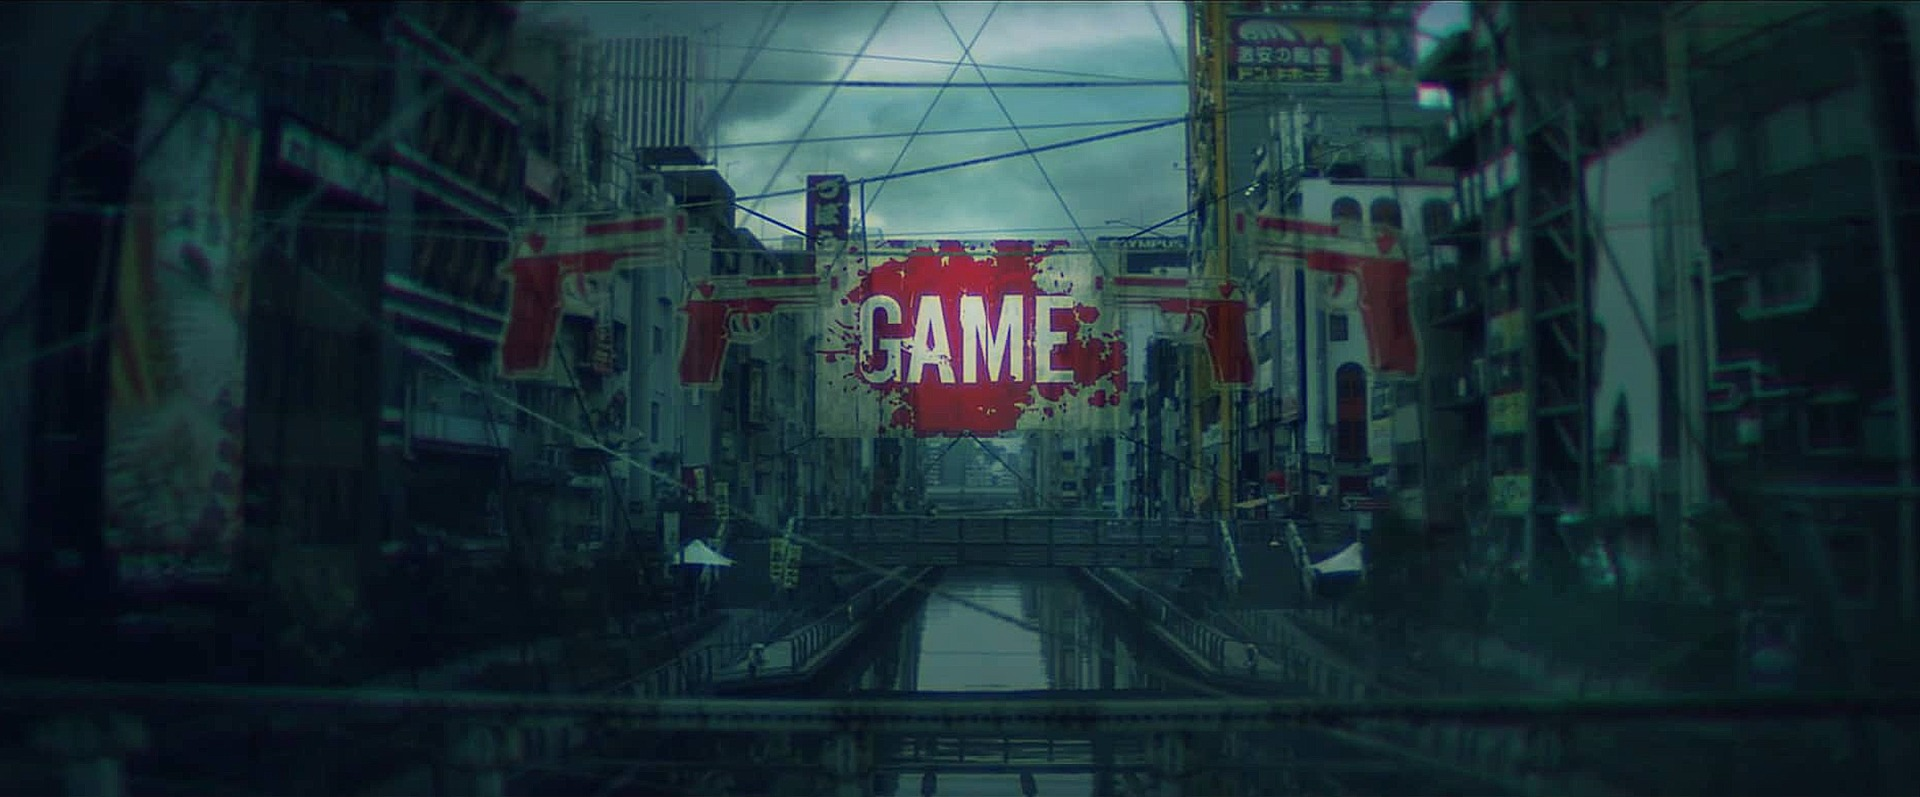 ▷ Die Game - Teaser